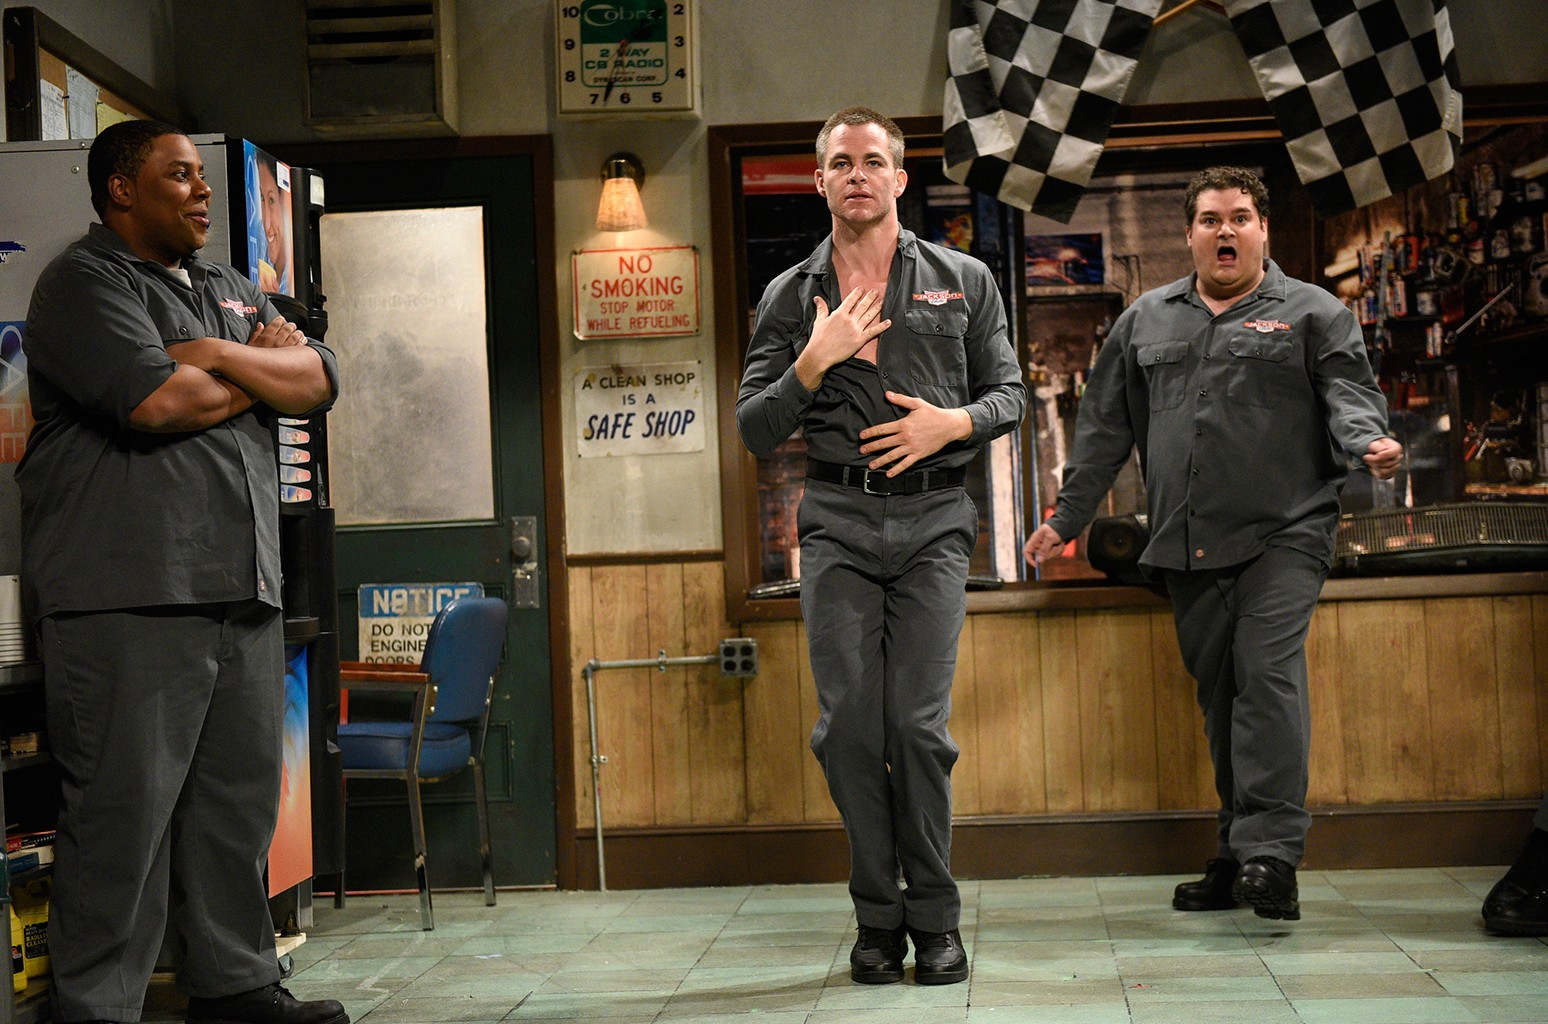 "(l-r) Kenan Thompson, Chris Pine and Bobby Moynihan as car mechanics during ""Auto Shop"" sketch in studio 8H on 'Saturday Night Live' on May 6, 2017."